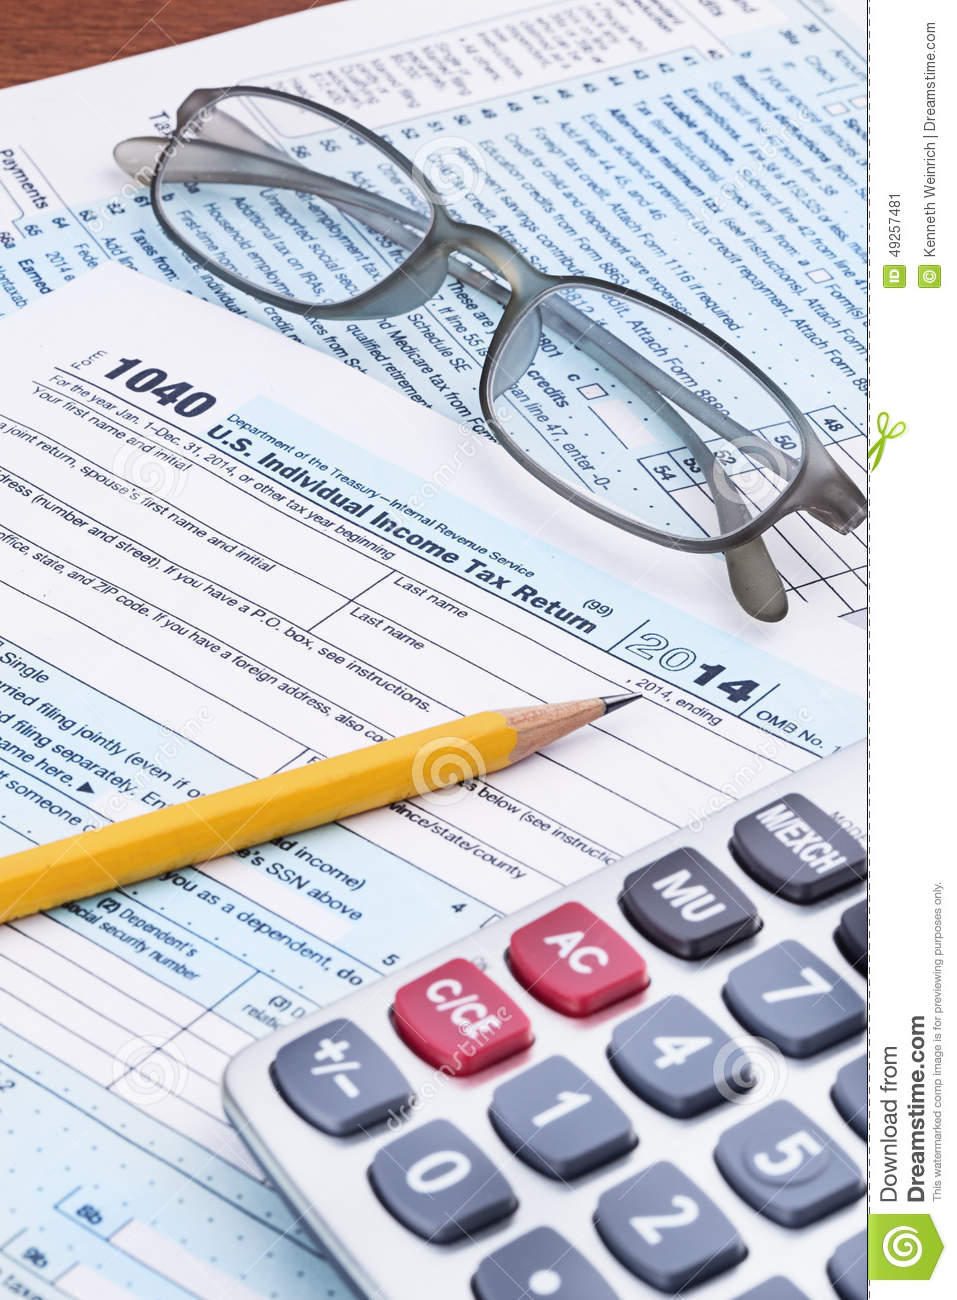 Form 1040 For 2014 Tax Year Stock Image Image Of Closeup Year